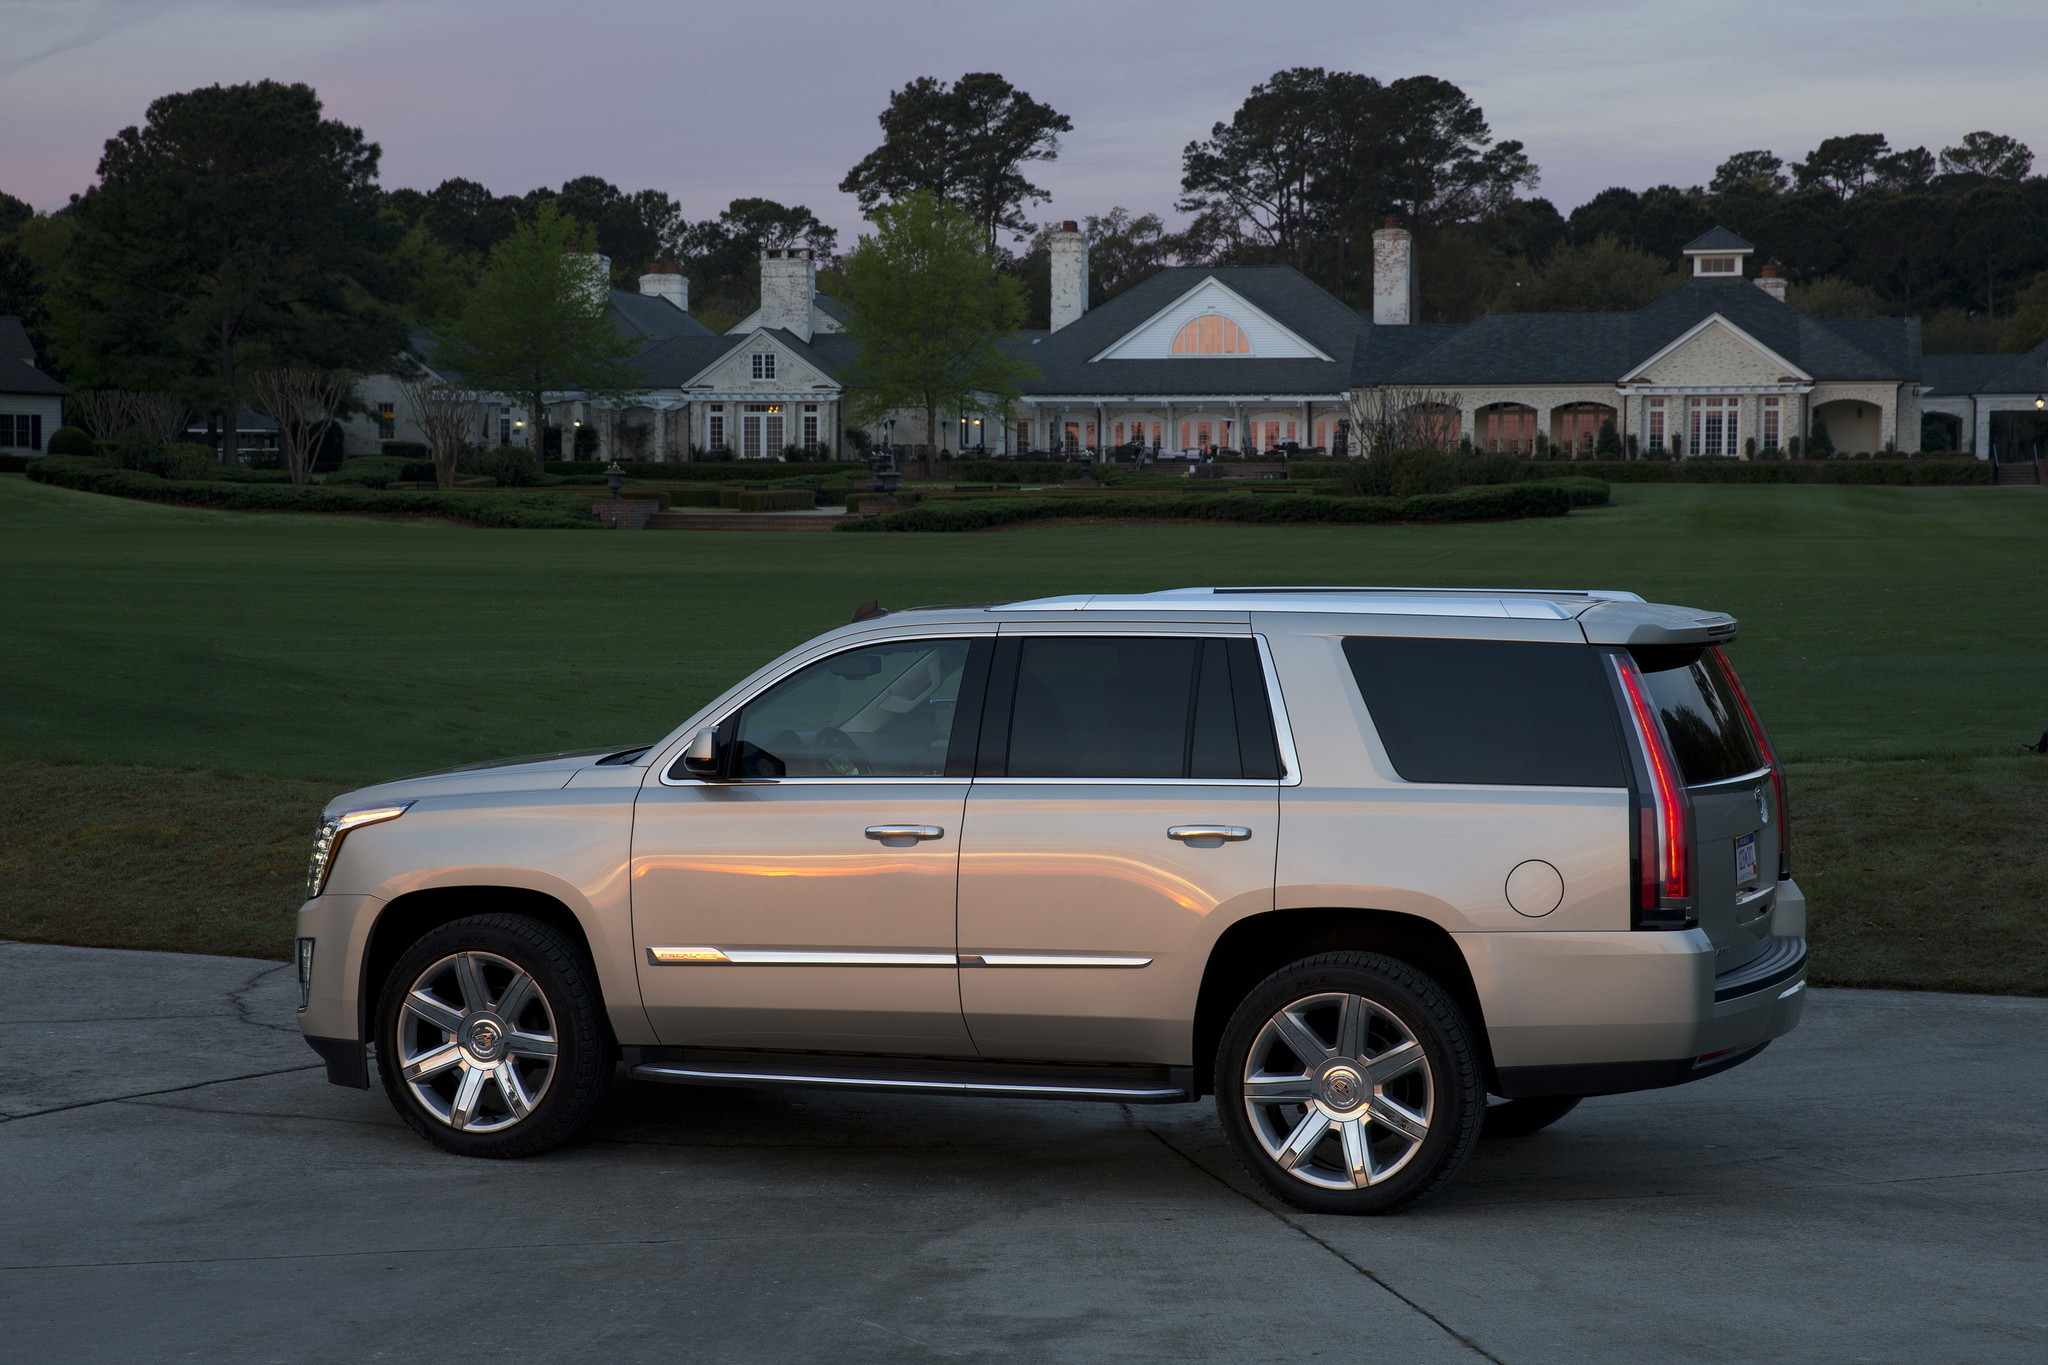 First times drive cadillac s 2015 escalade can t hide humble roots la times